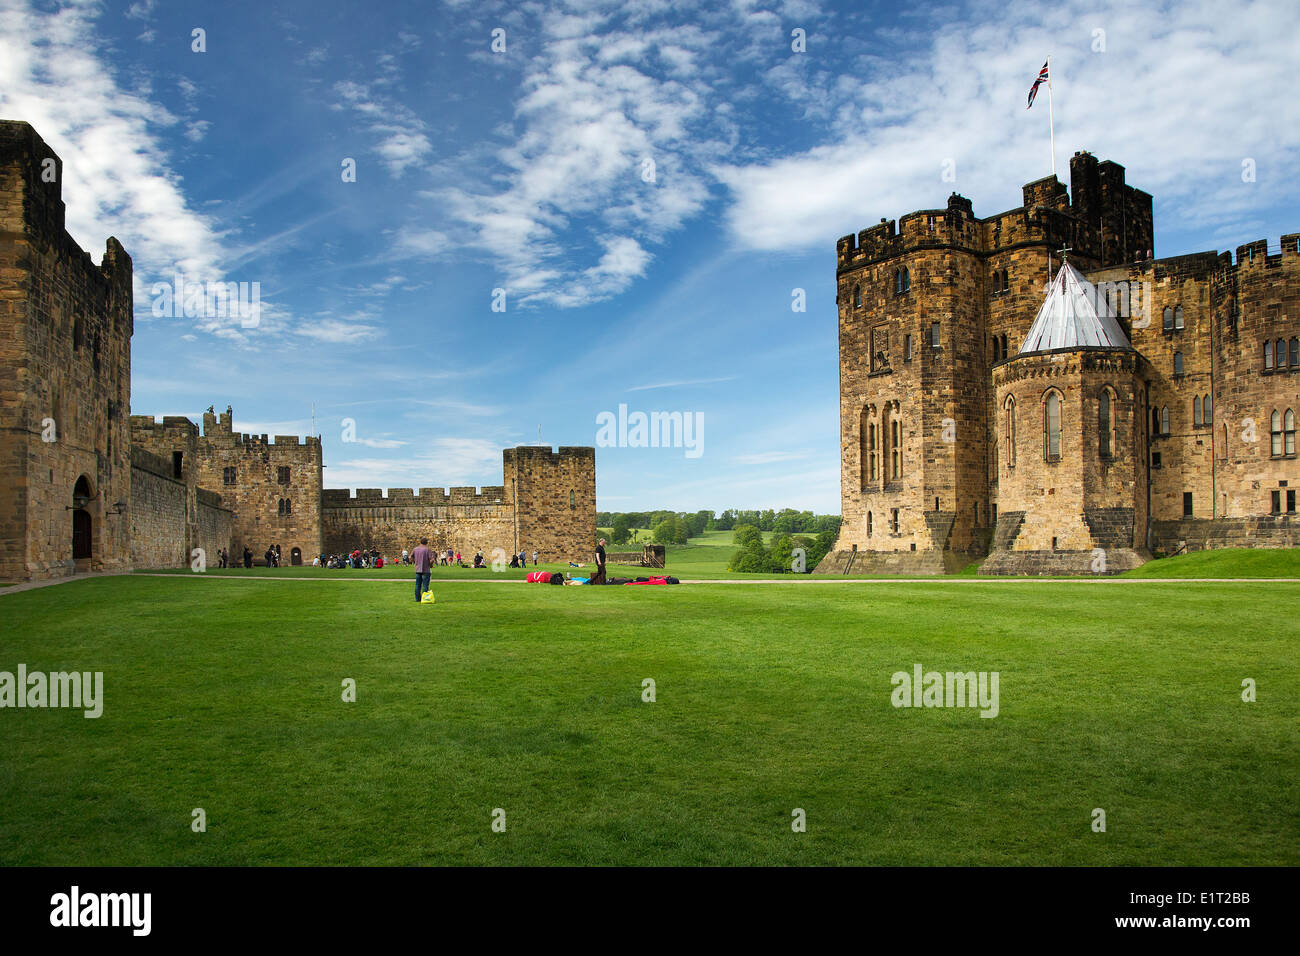 Harry potter alnwick castle pictures Complete Guide to Harry Potter Sites in Edinburgh